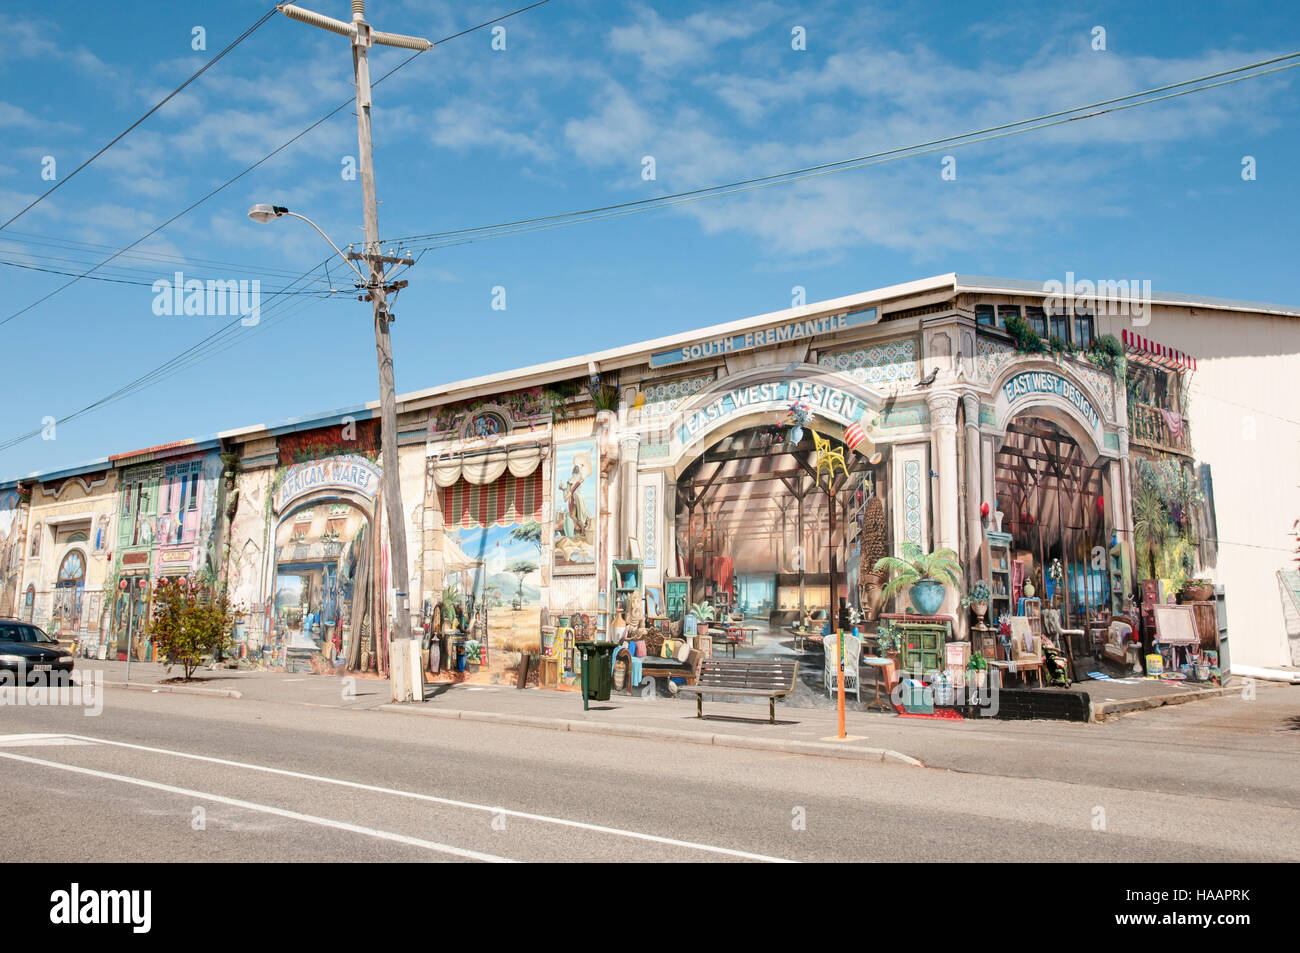 Artistic Graffiti - Fremantle - Australia - Stock Image